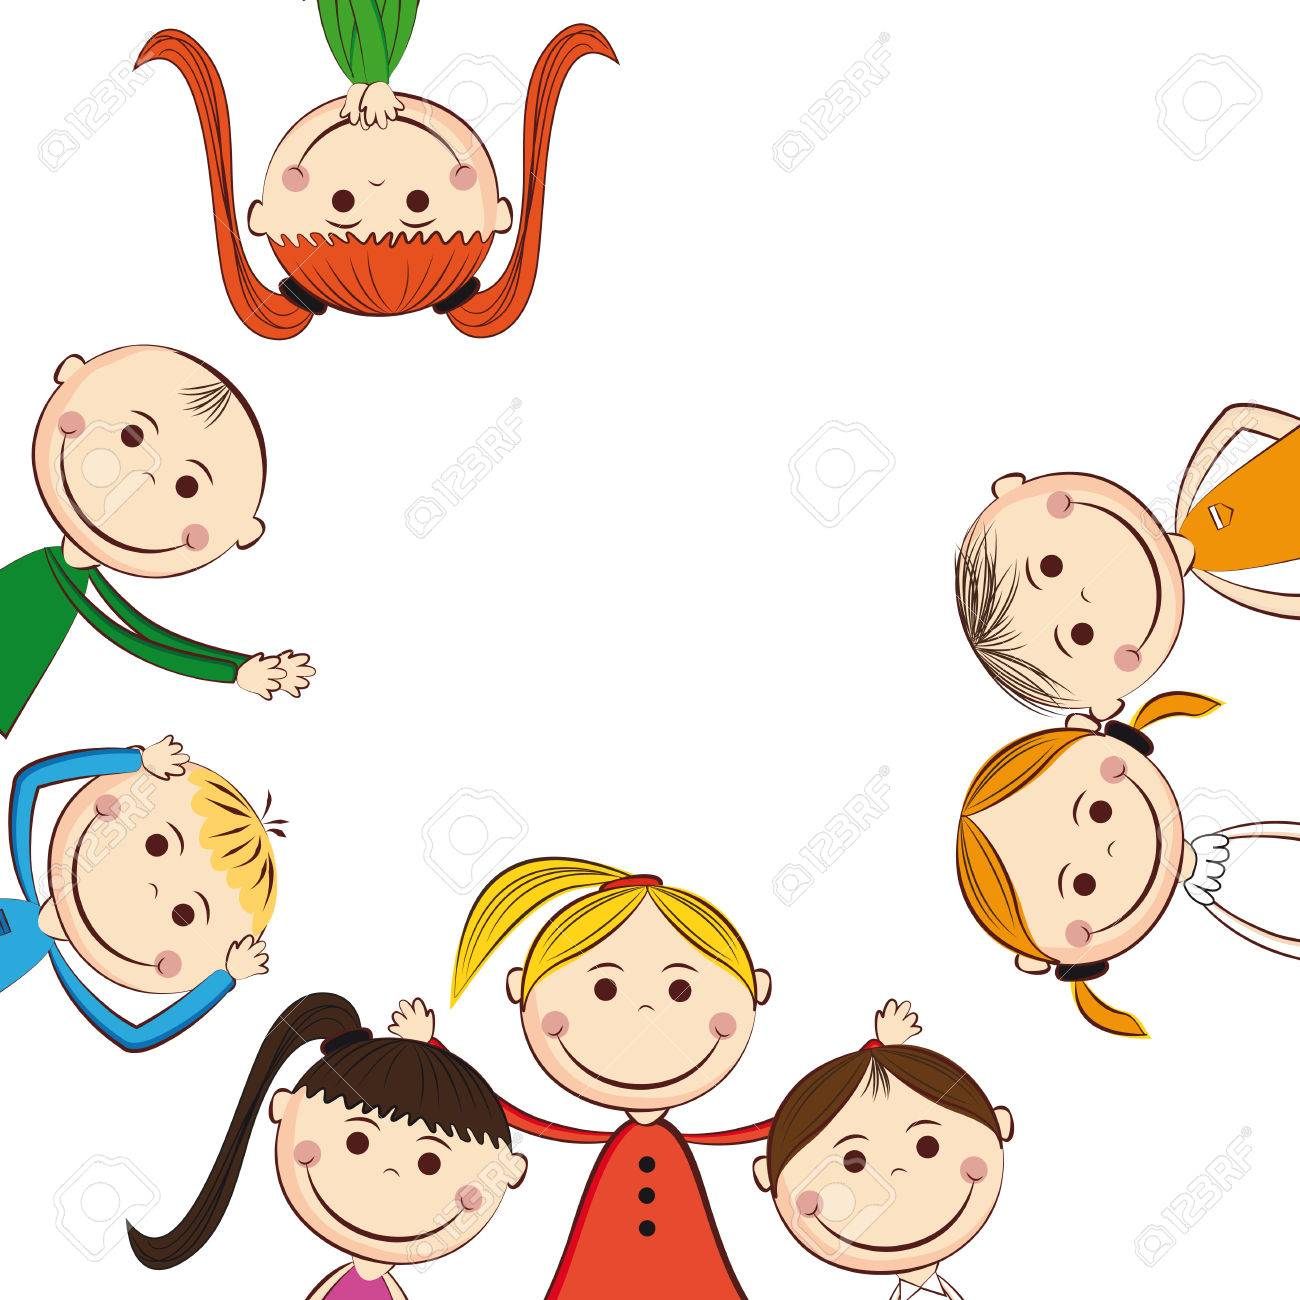 Small and smile boys and girls Stock Vector - 24814461